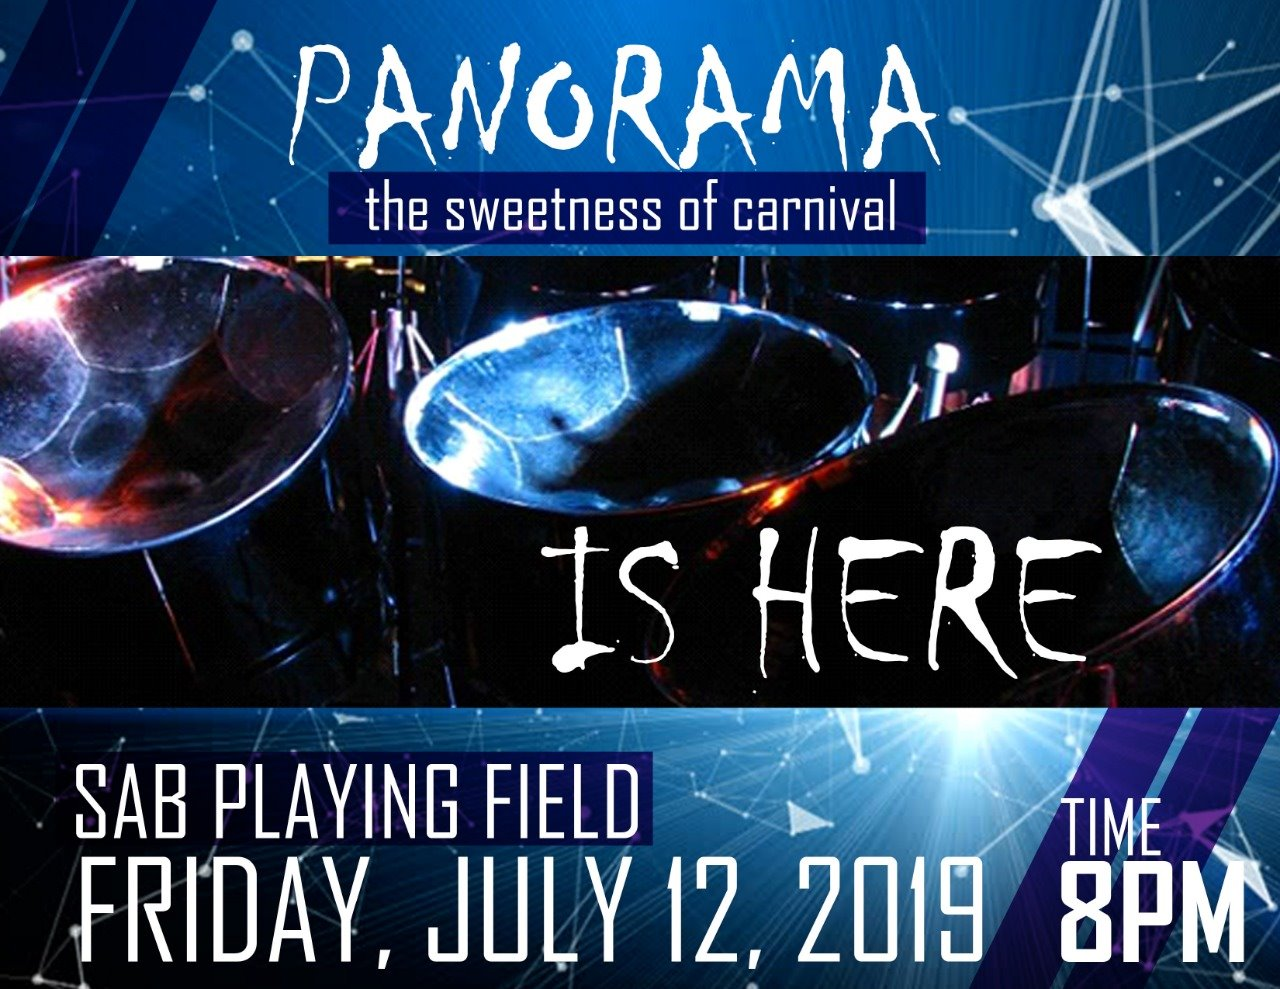 The St Lucia National Steel bands association presnts Panorama Saint Lucia Carnival 2019